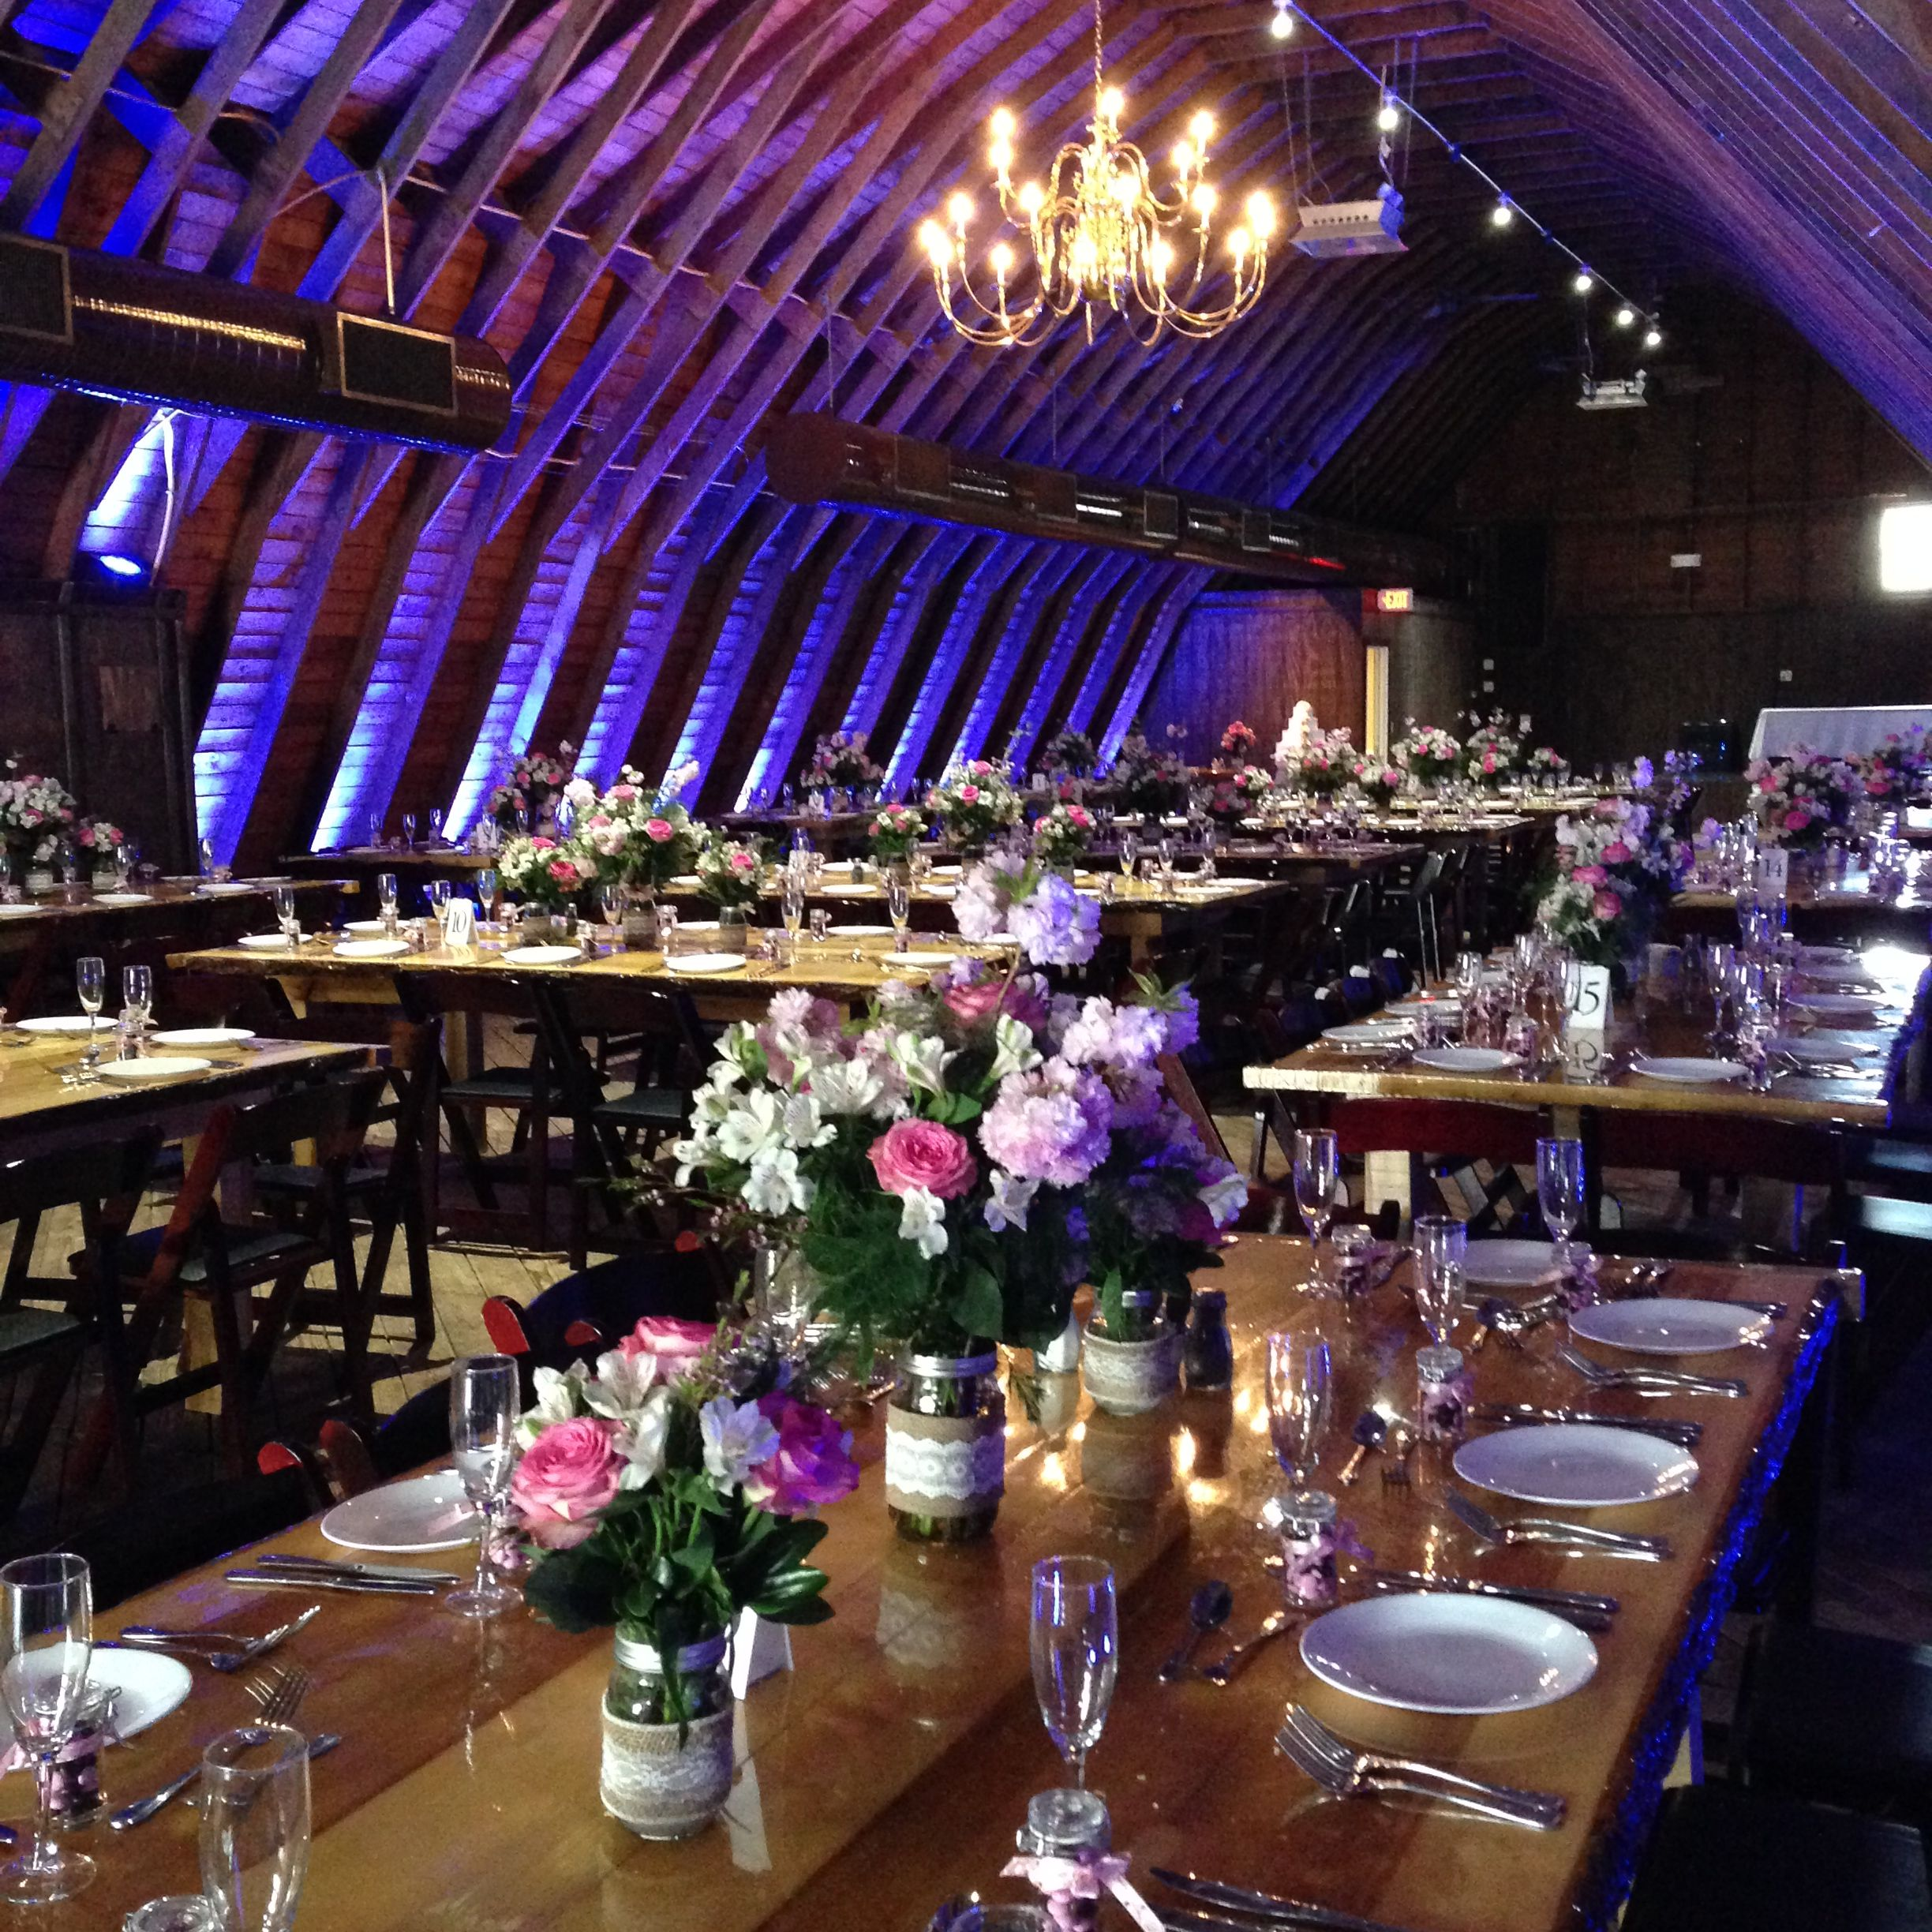 The Barn At Perona Farms With Blue Uplighting